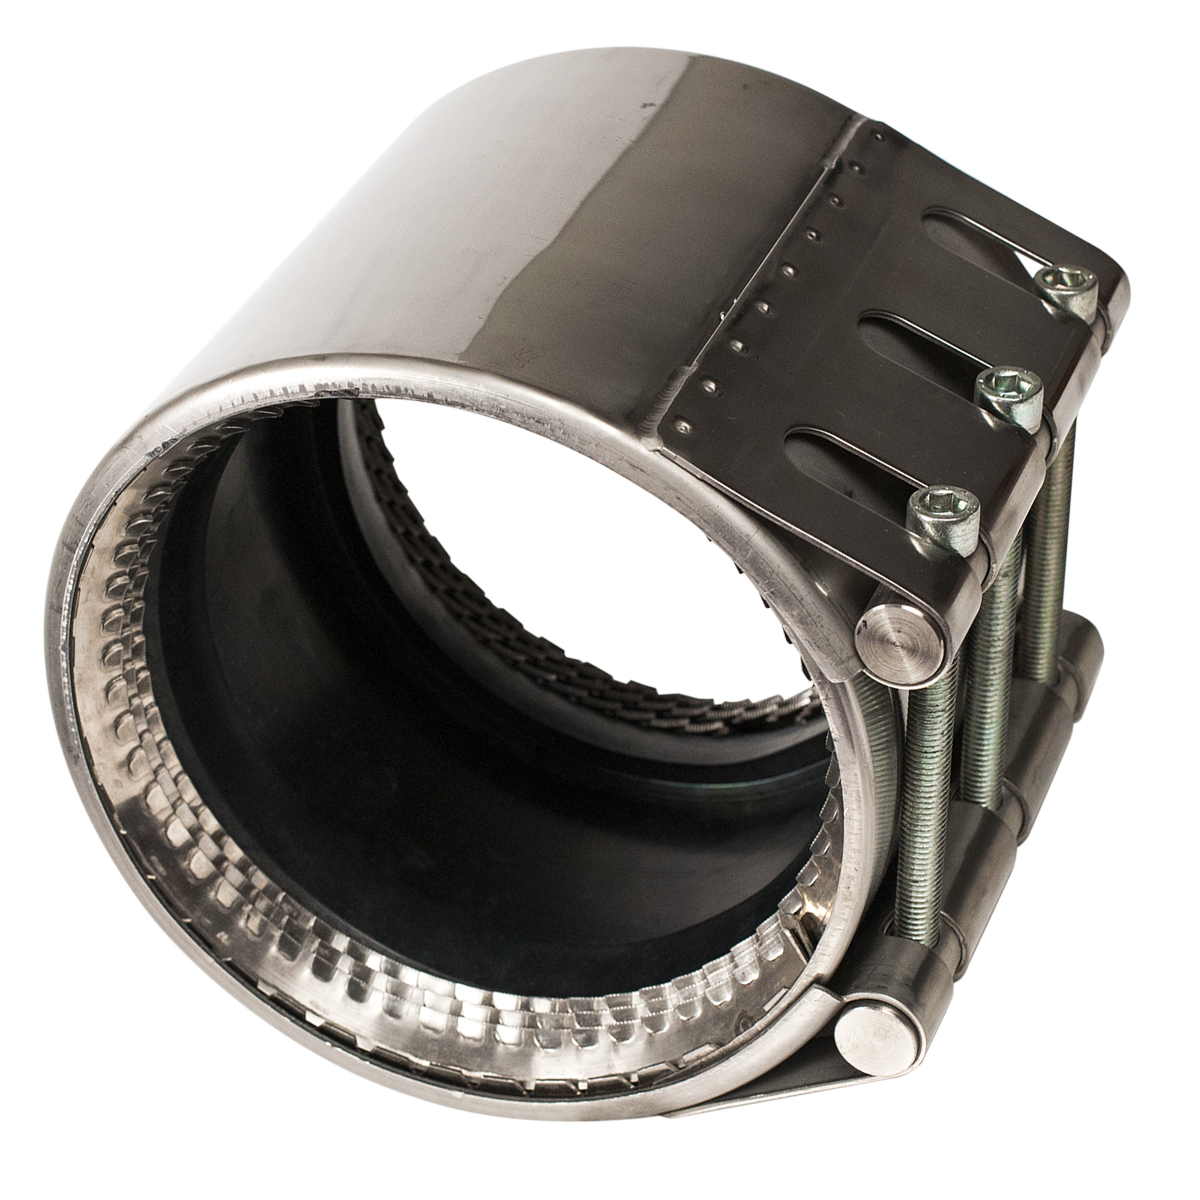 ARMOR LOCK - All stainless steel coupling with quick stab-fit installation